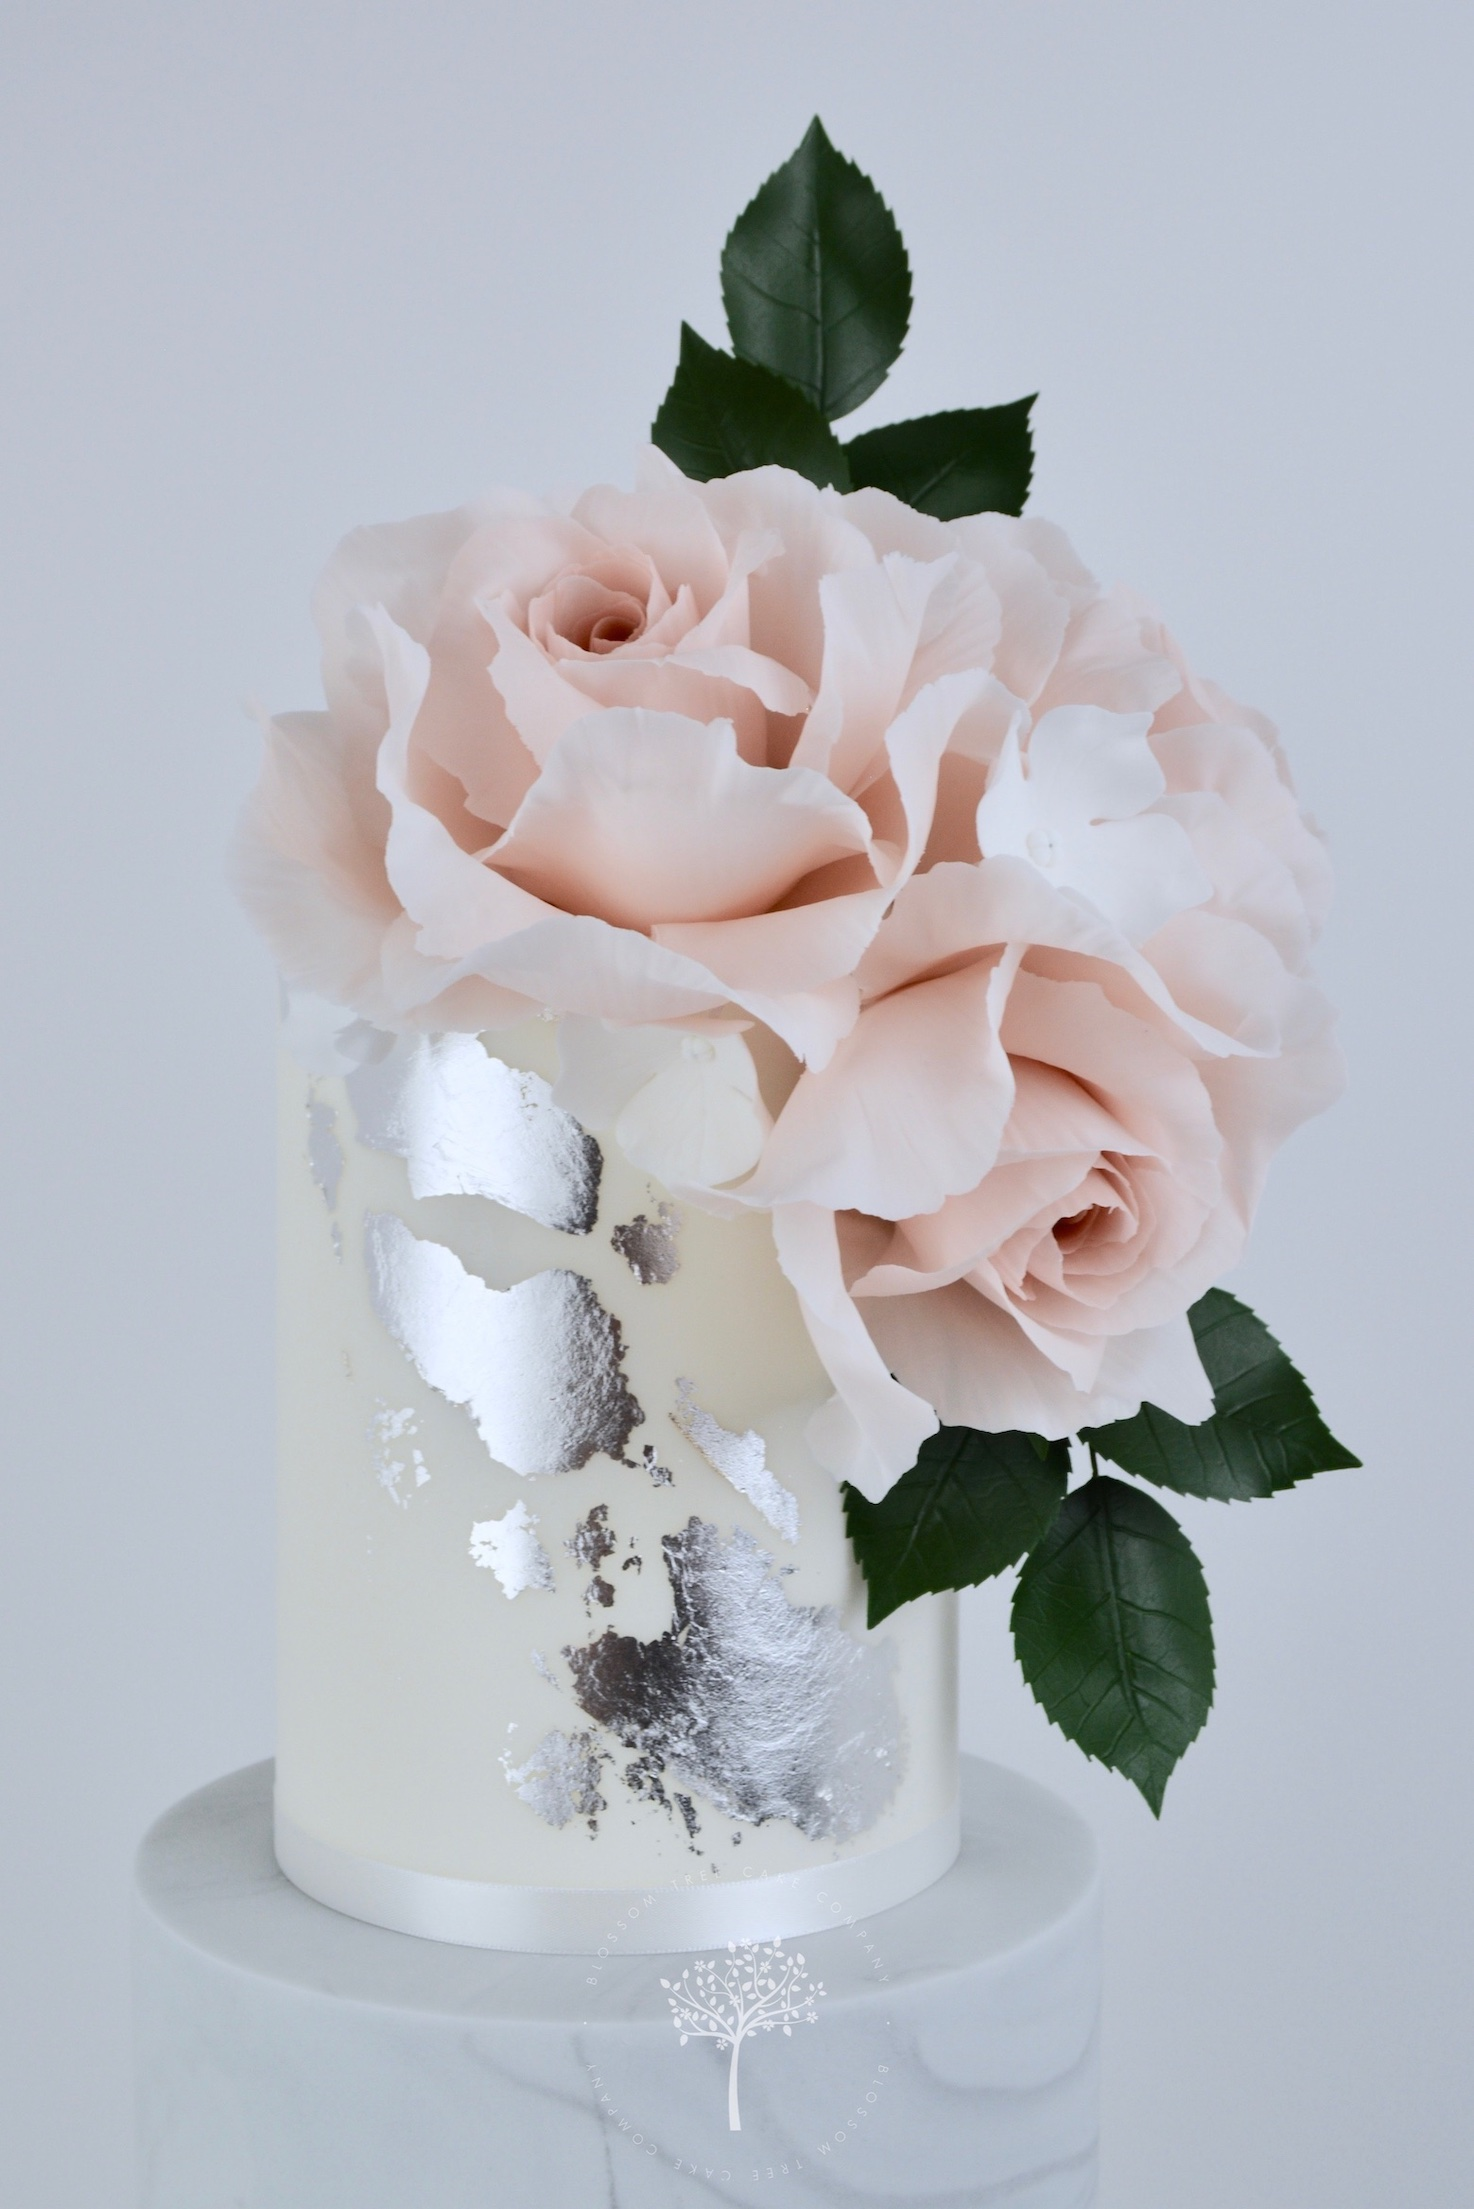 Blush Roses & Silver wedding cake by Blossom Tree Cake Company Harrogate North Yorkshire - top sugar roses.jpg